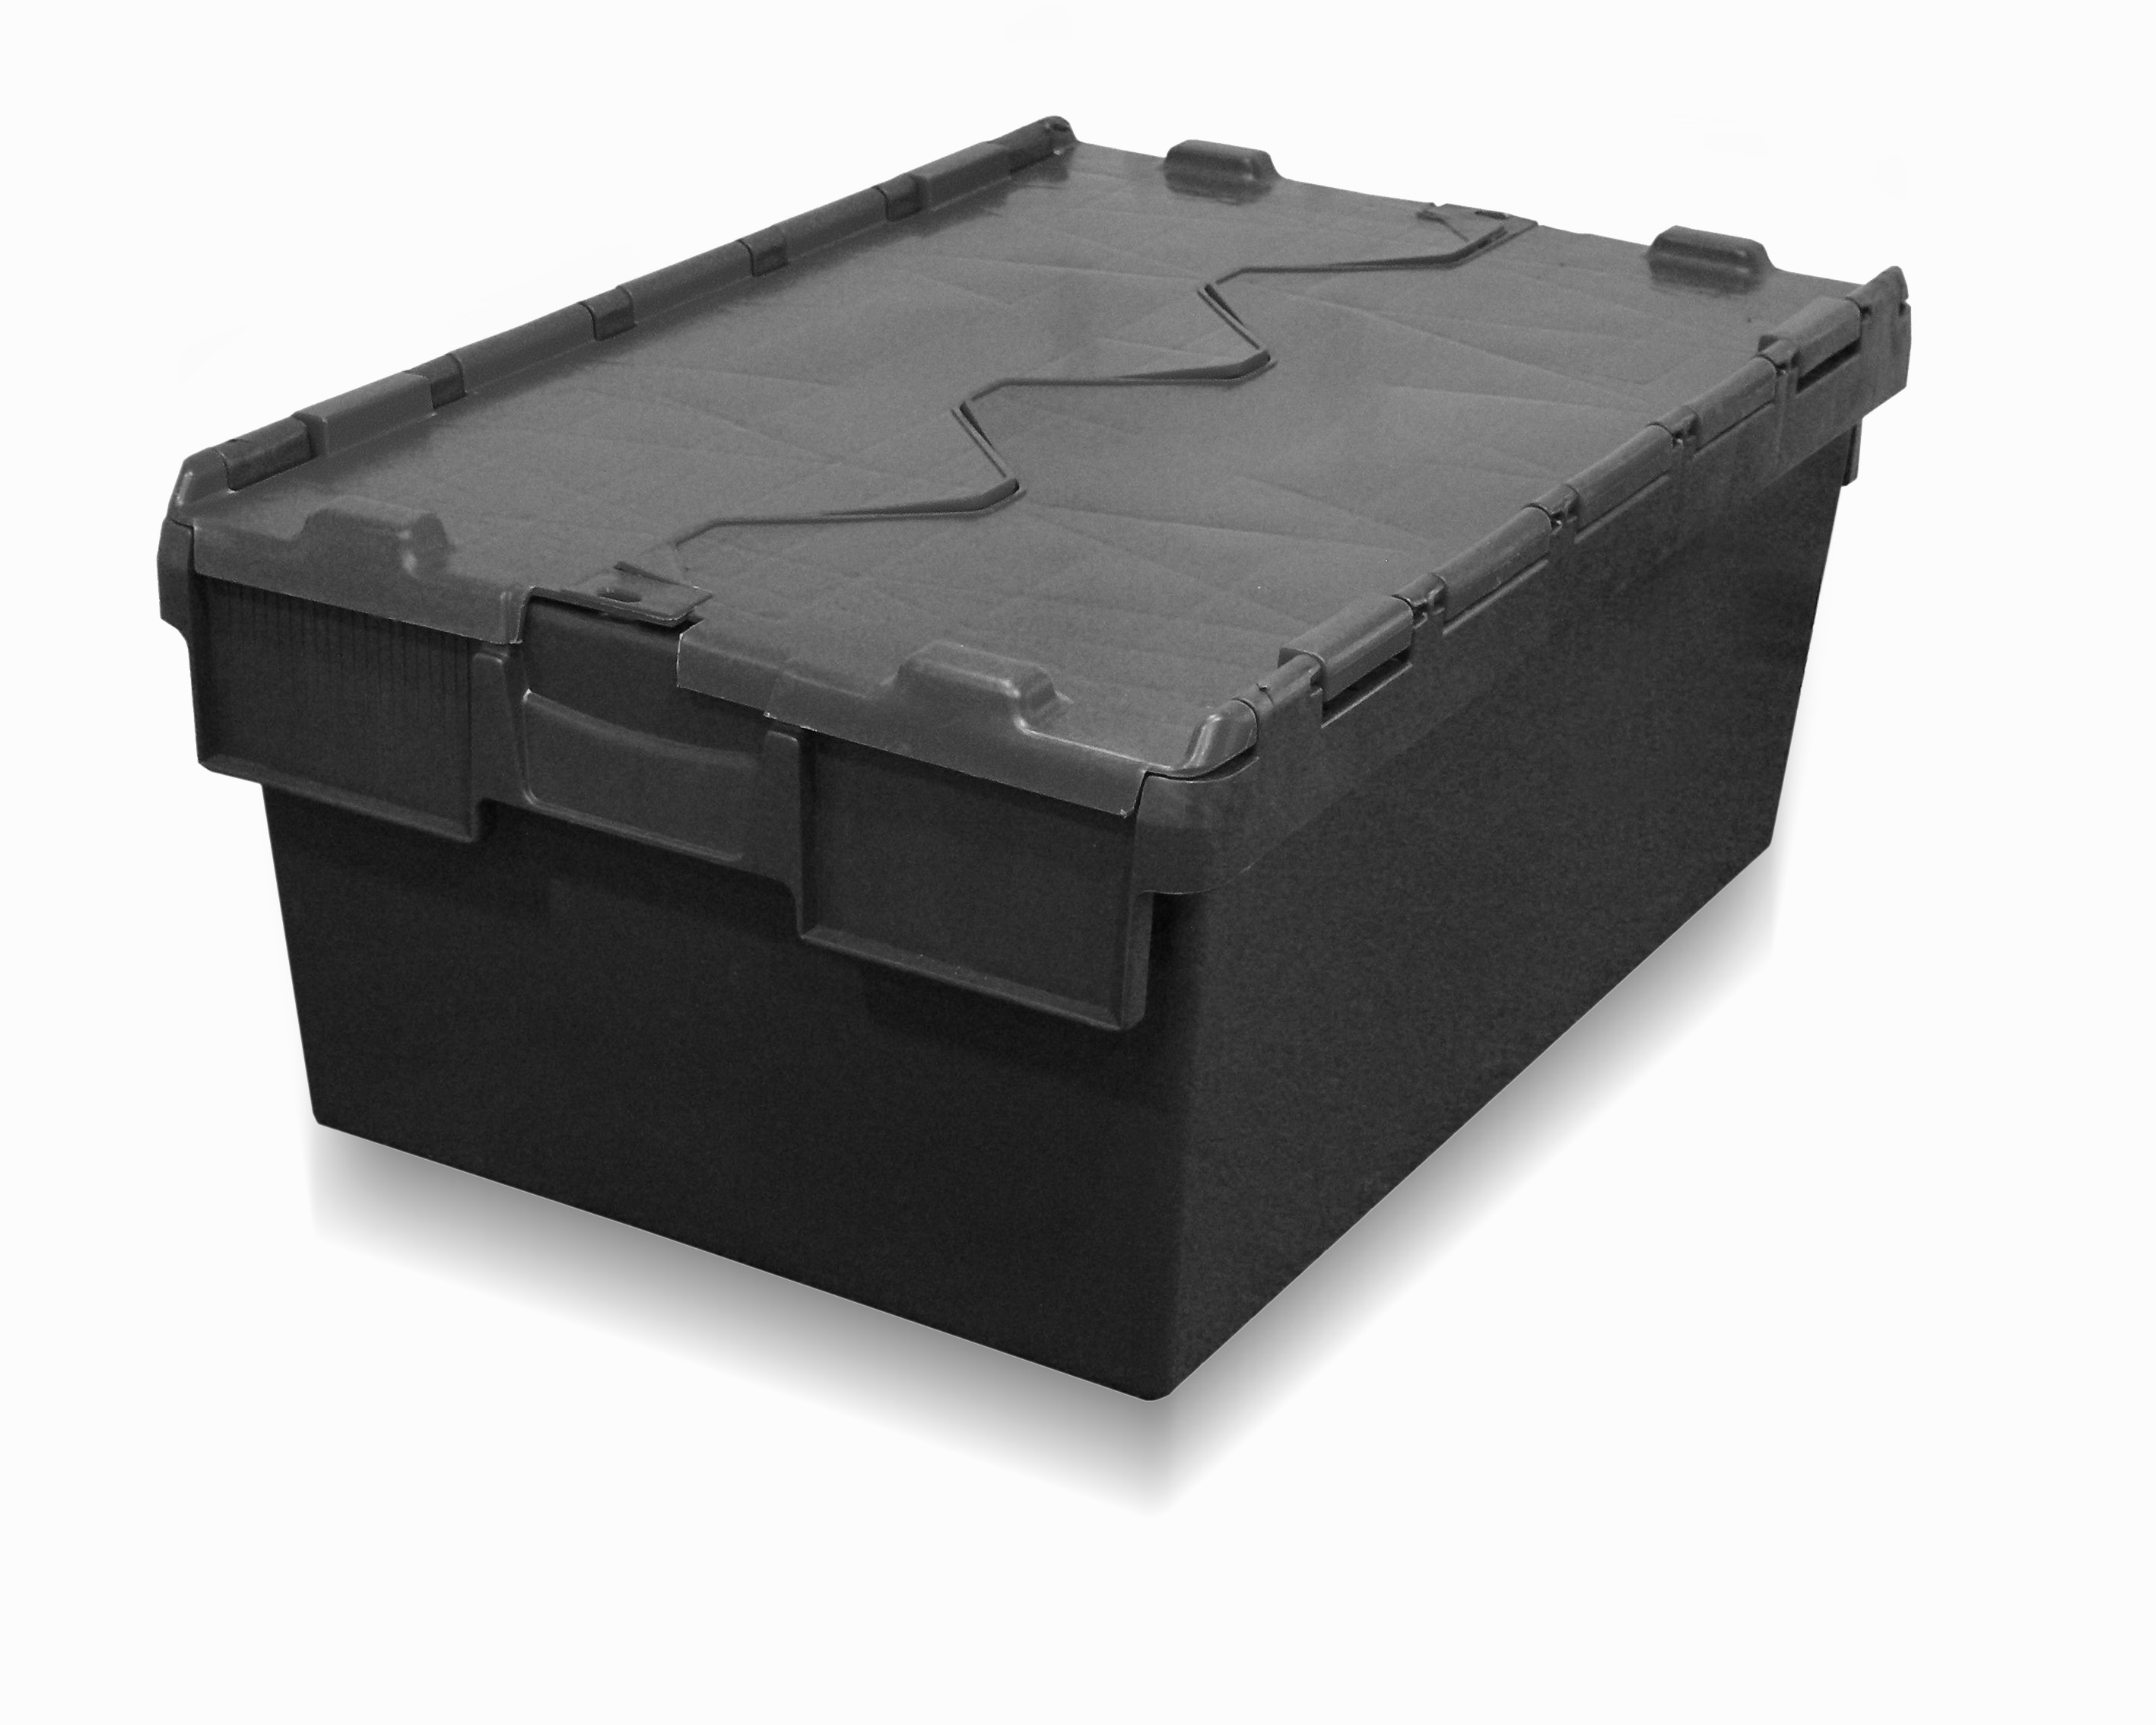 Tote Box Attached Lid Container 40l 600 X 400 X 250h Mm